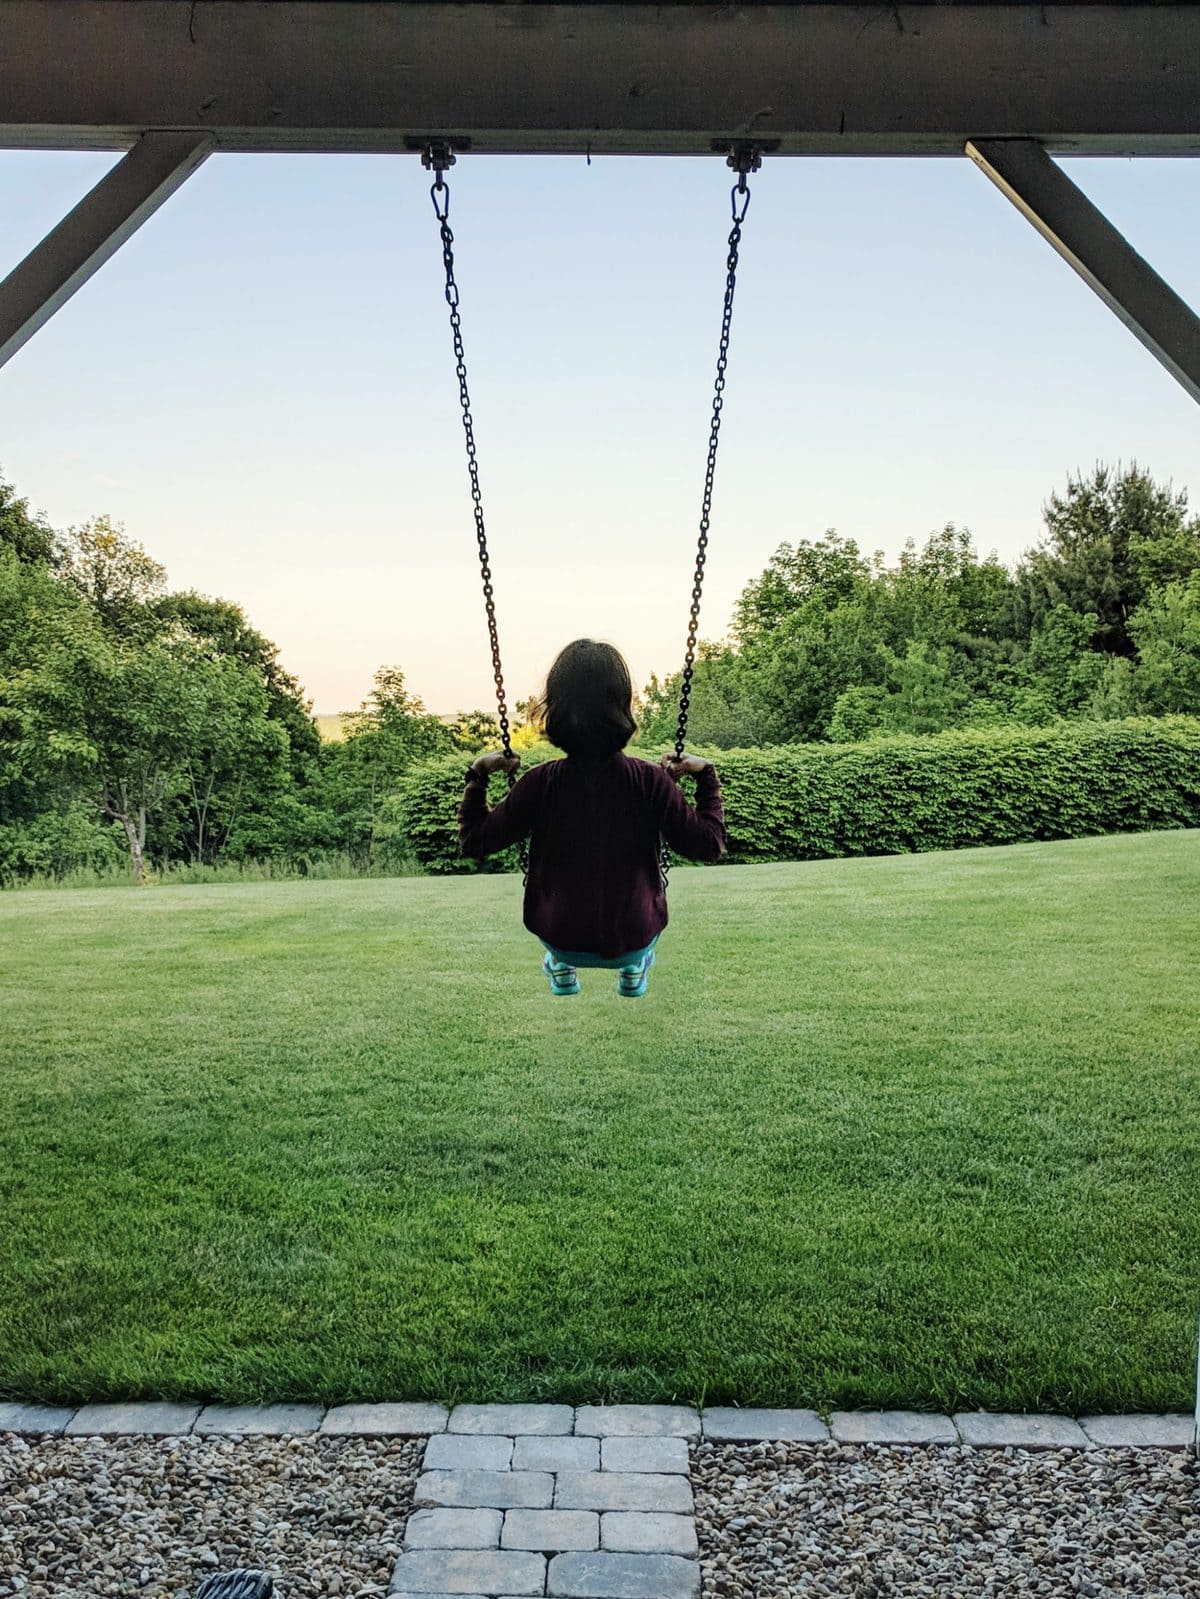 the silhouette of me swinging while overlooking a lush green field